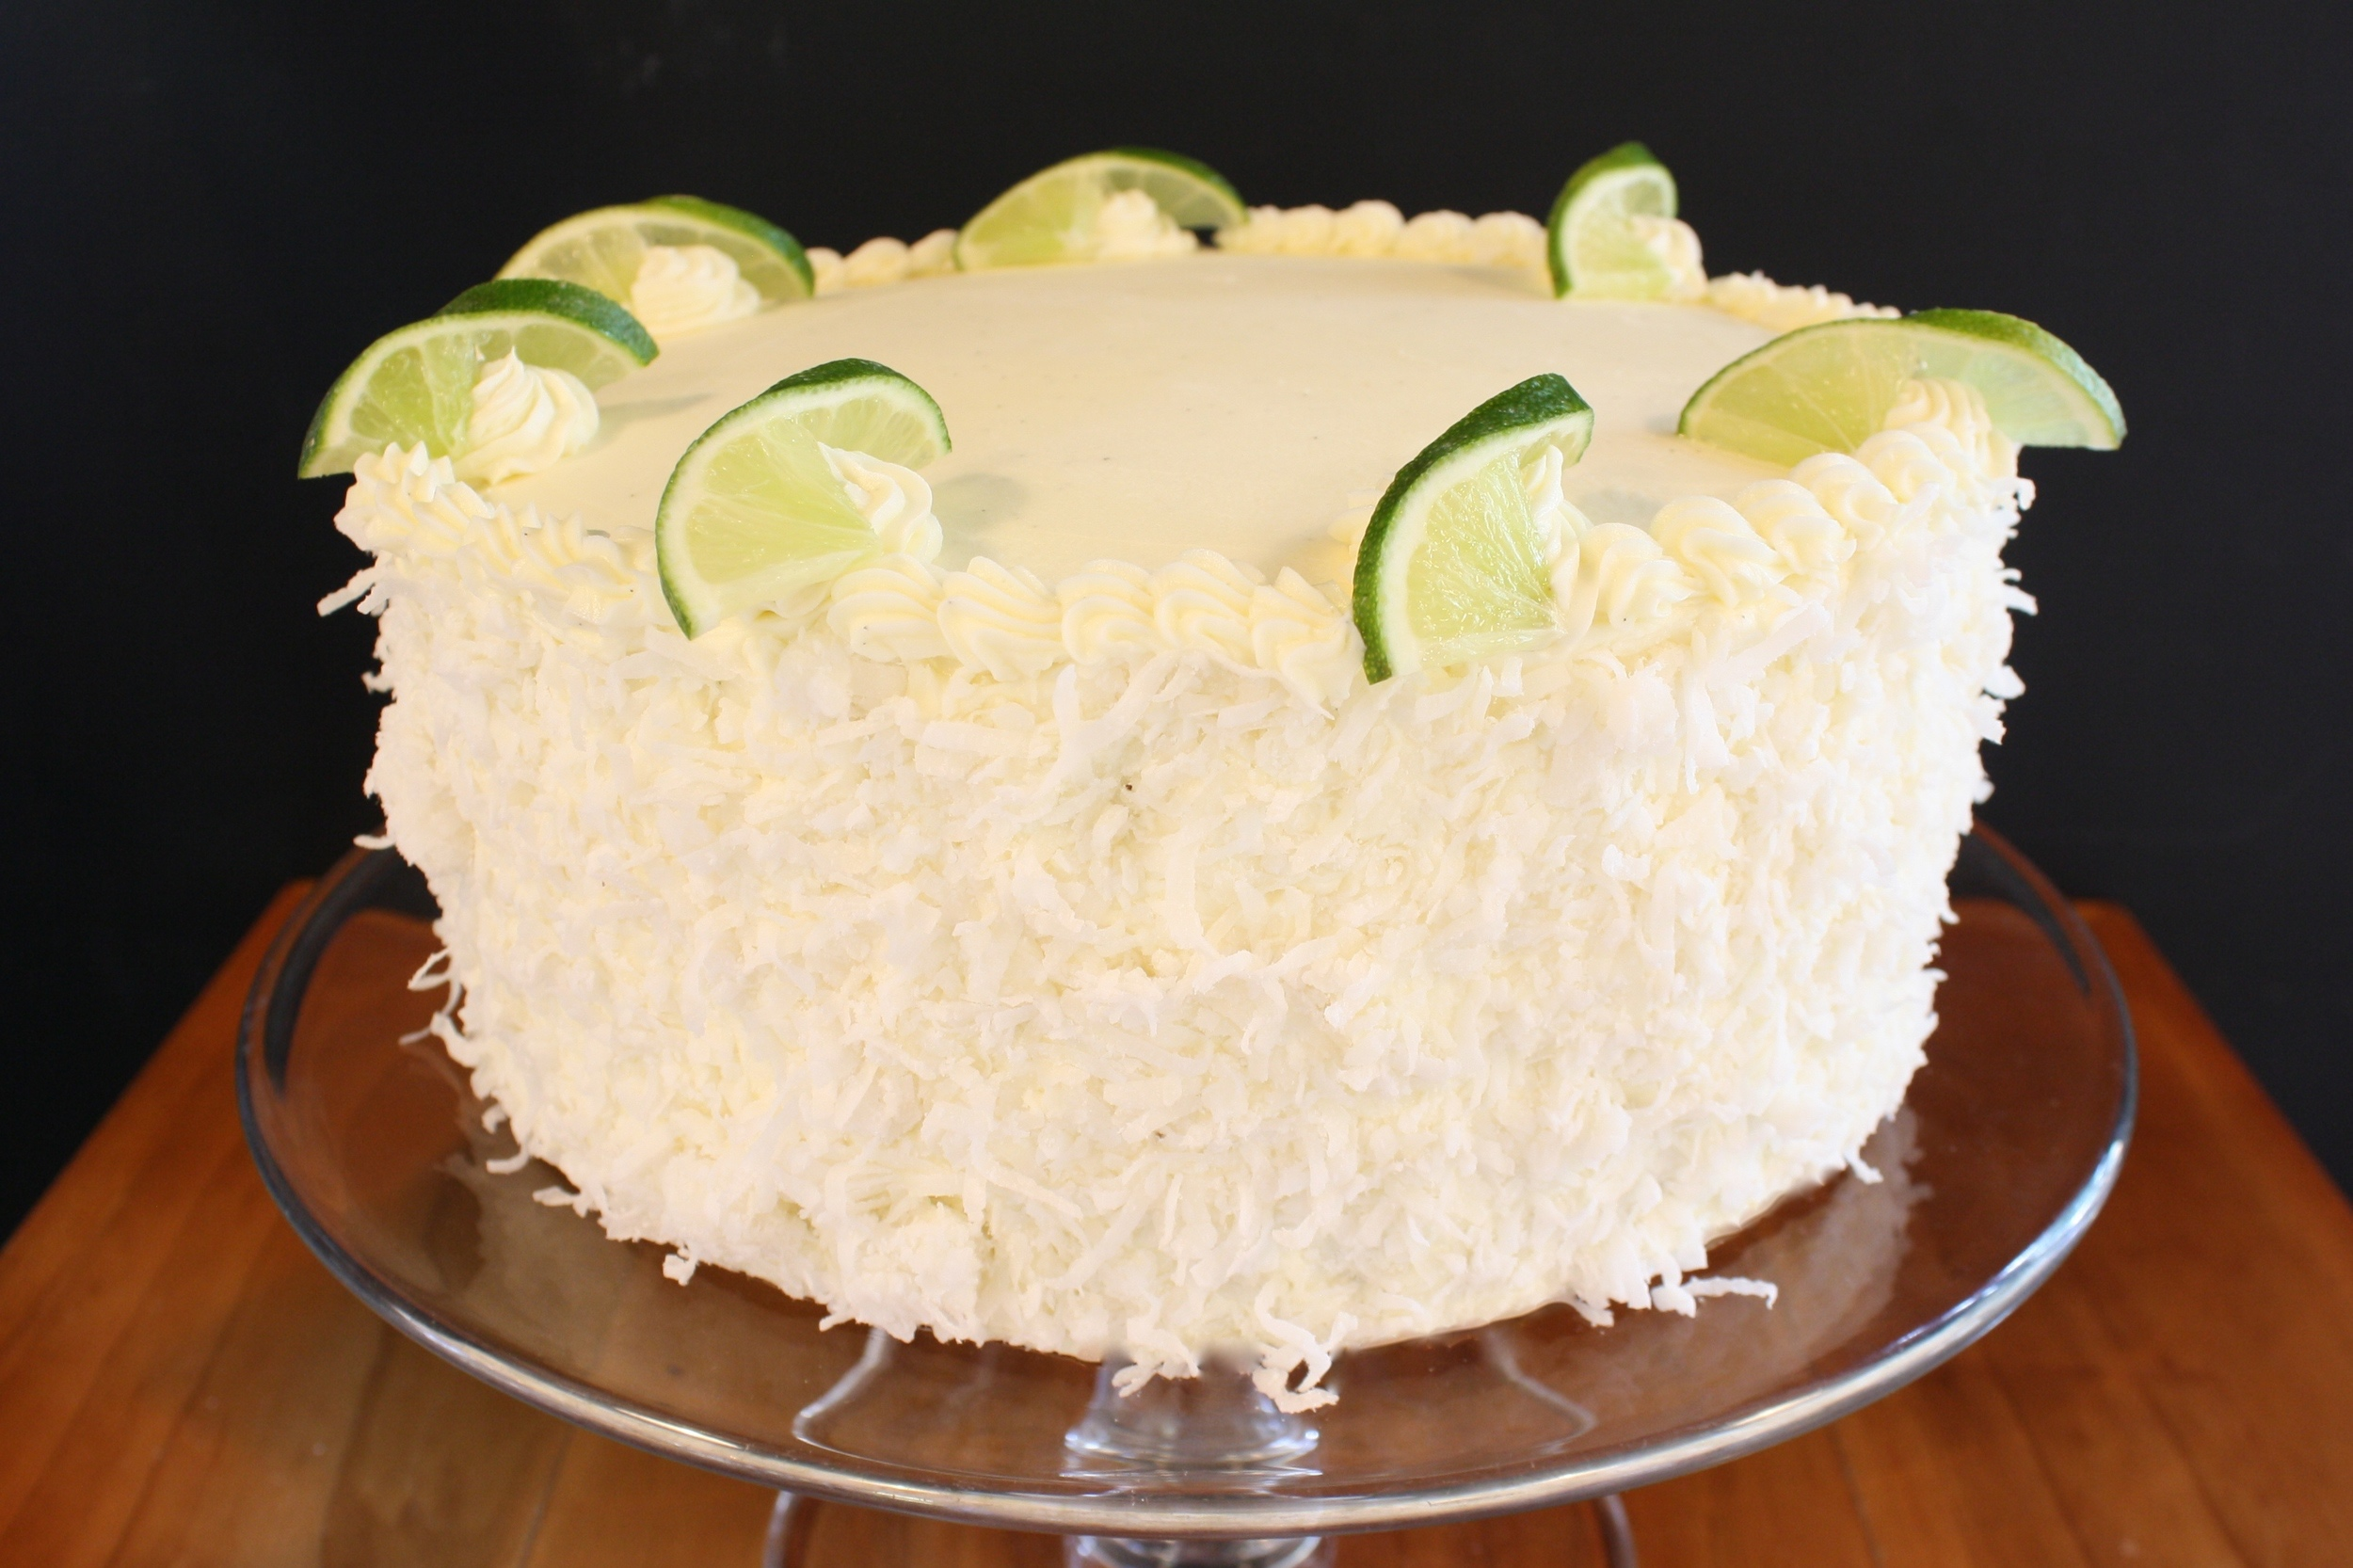 Coconut lime curd*  an ambrosial coconut cake layered with housemade lime curd, frosted with coconut buttercream and decorated with shredded coconut